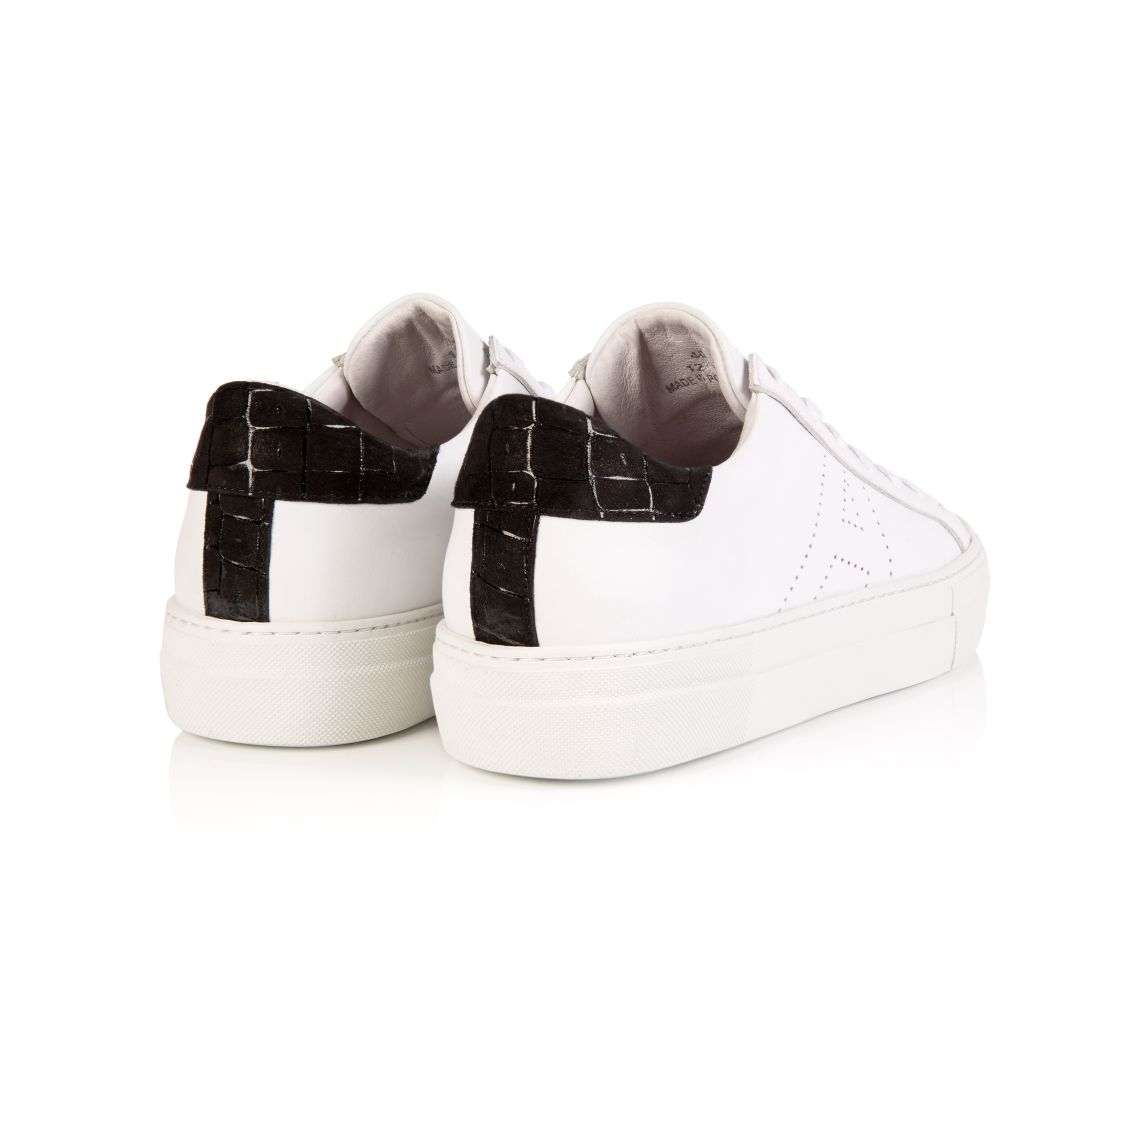 ROXY: WHITE & BLACK TRAINERS